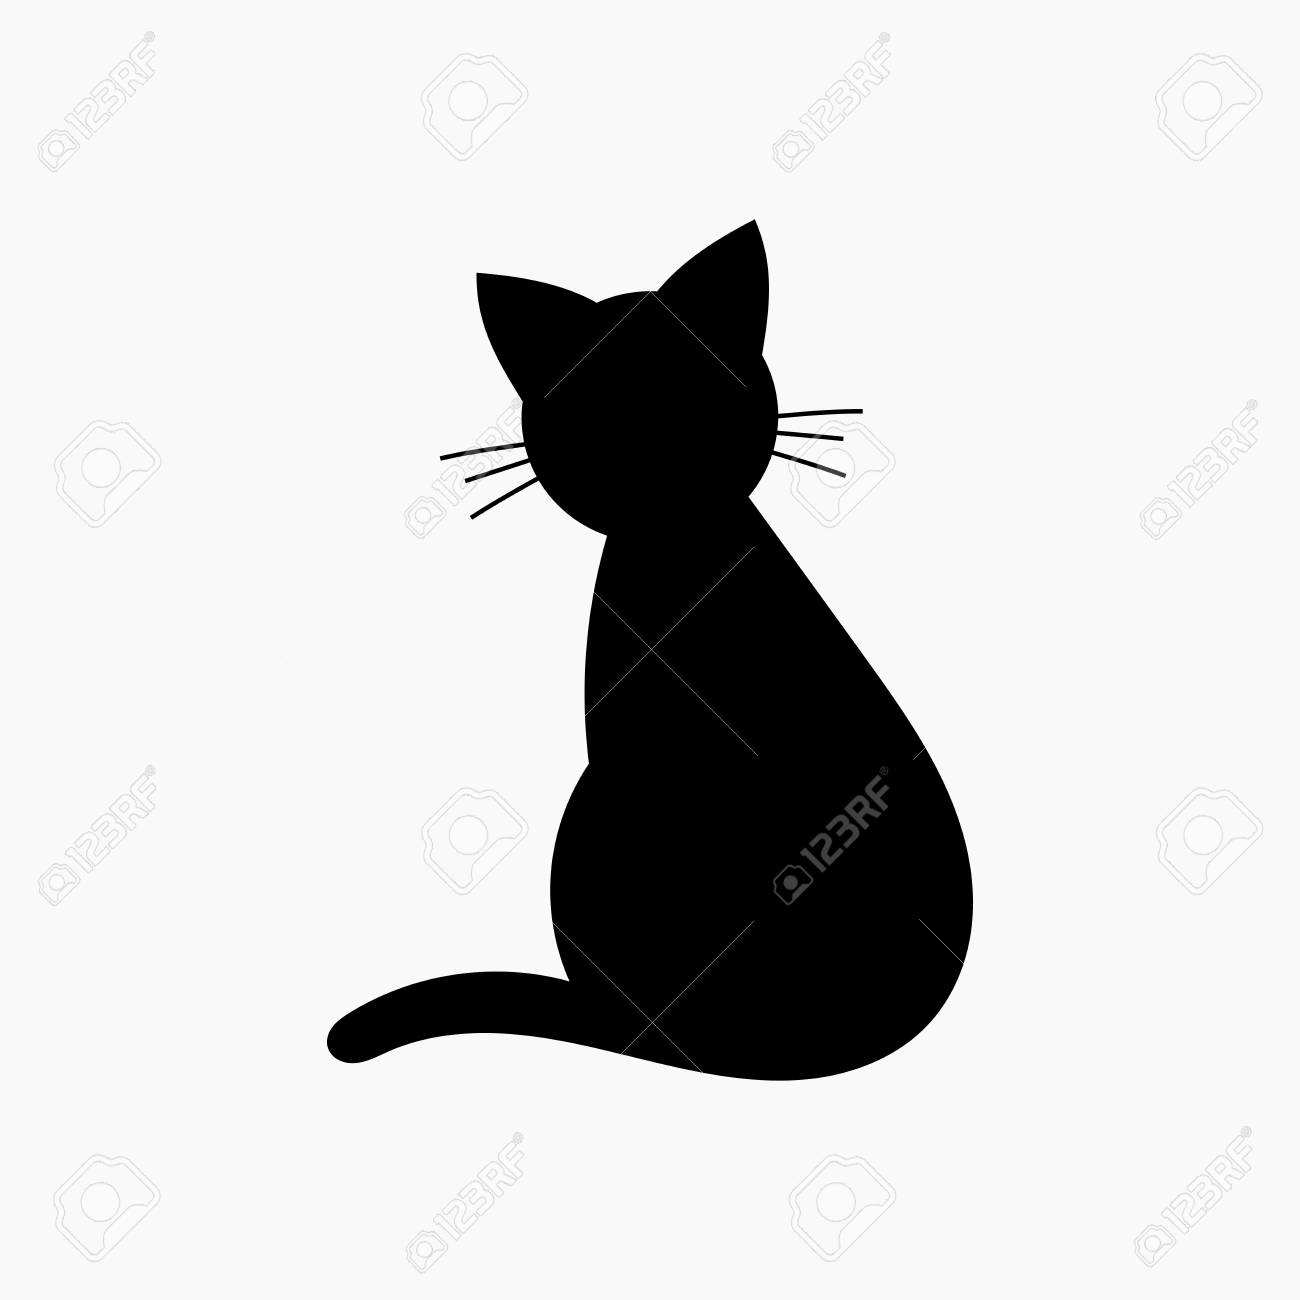 cat shape icon vector illustration stock vector 78904569